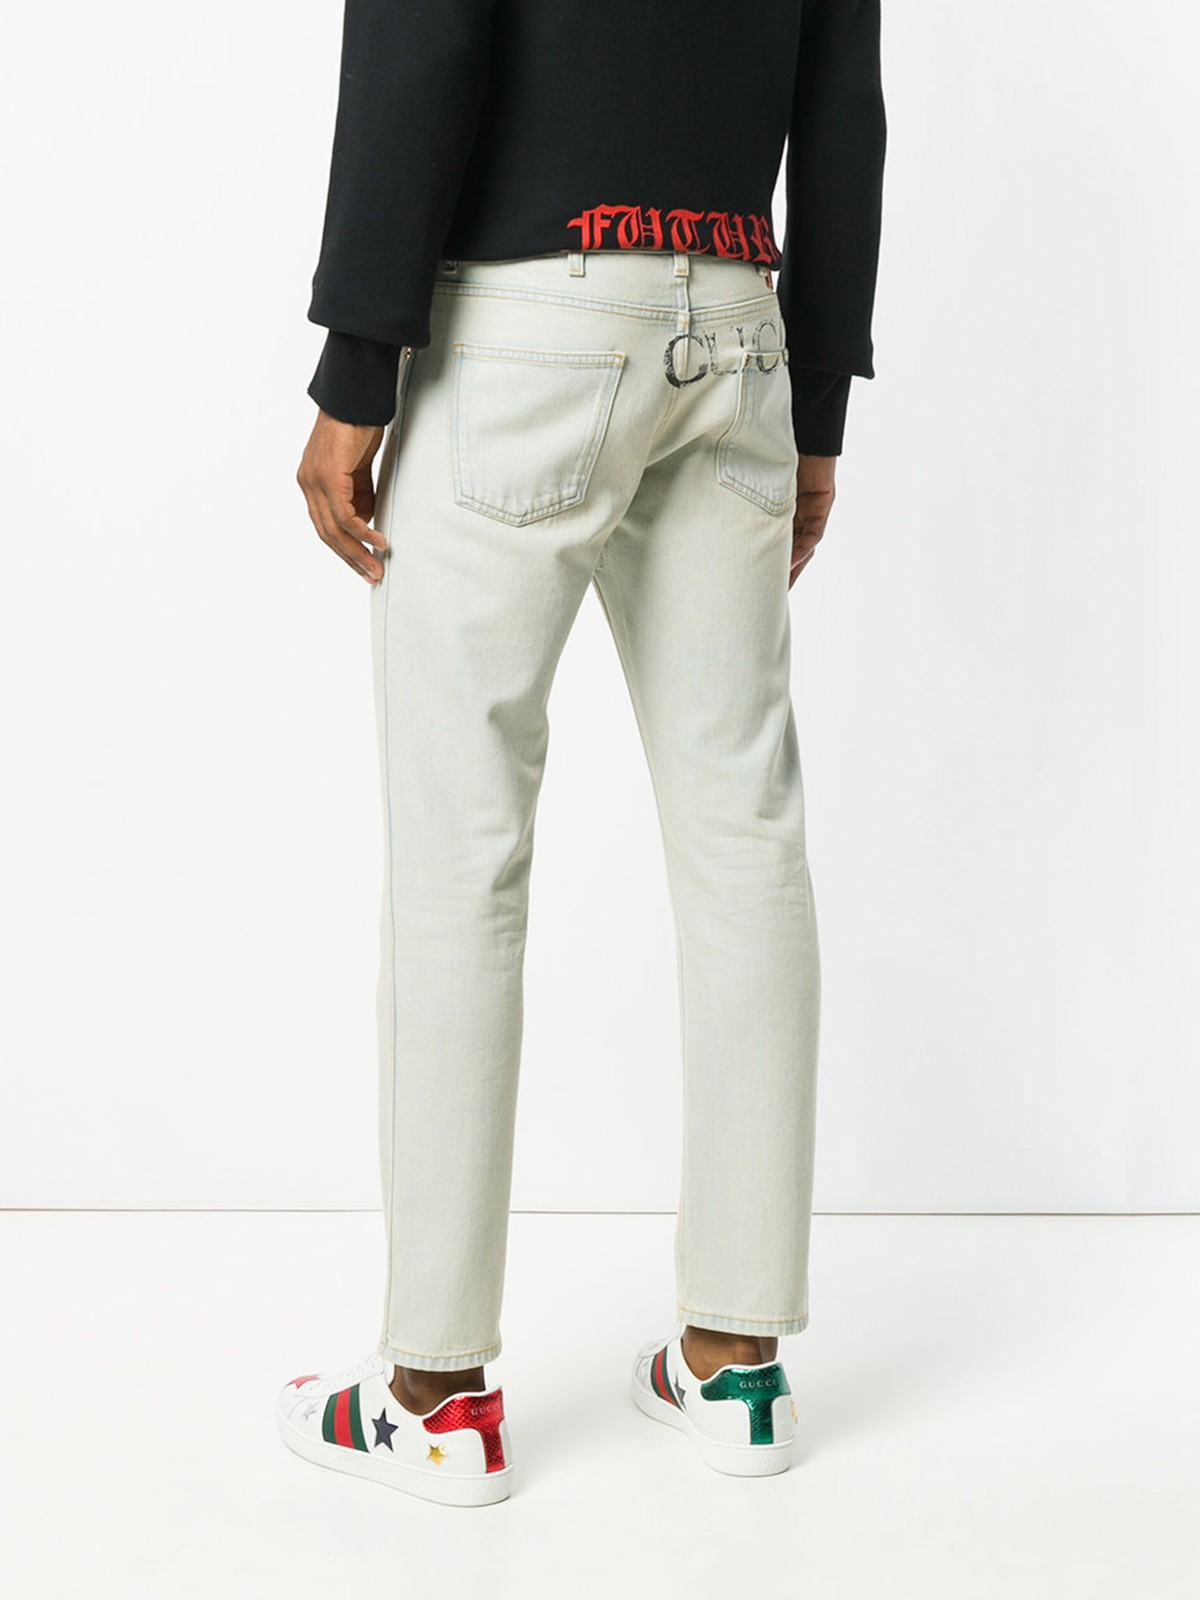 09722c0d726 gucci SKINNY JEANS available on montiboutique.com - 21995